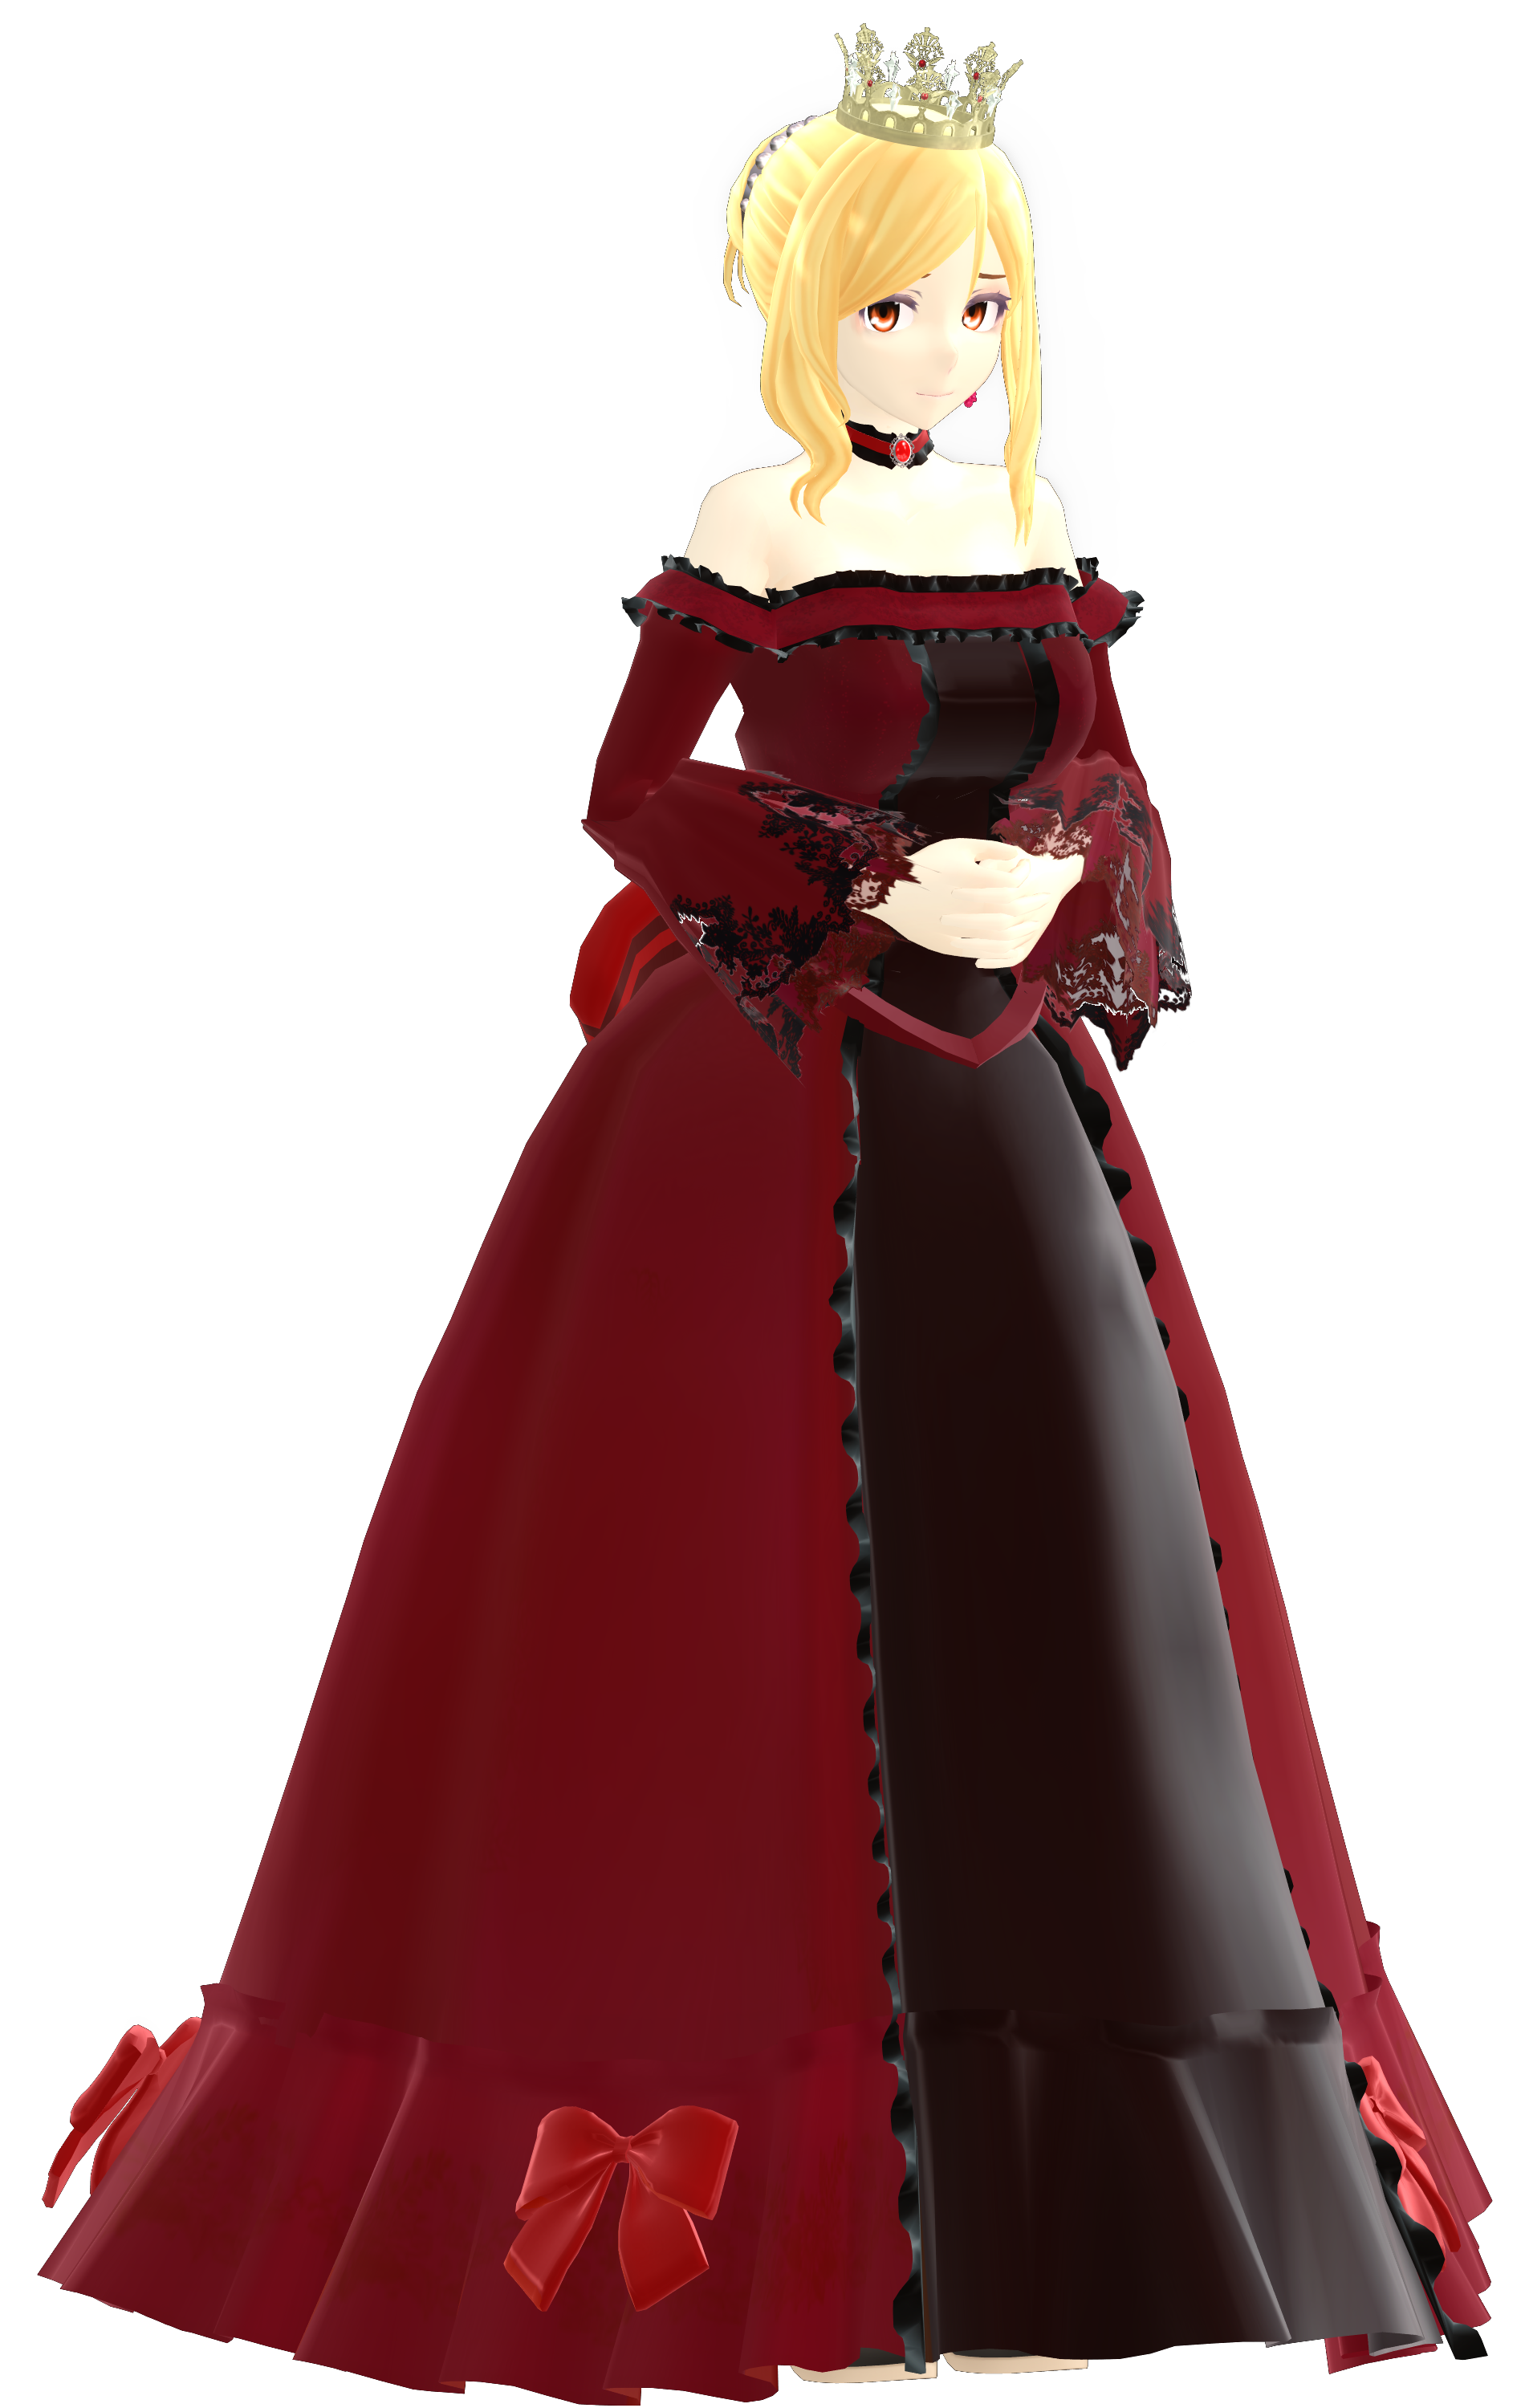 MMD Model: Sofia (Queen ver.) by LilithZatsune on DeviantArt